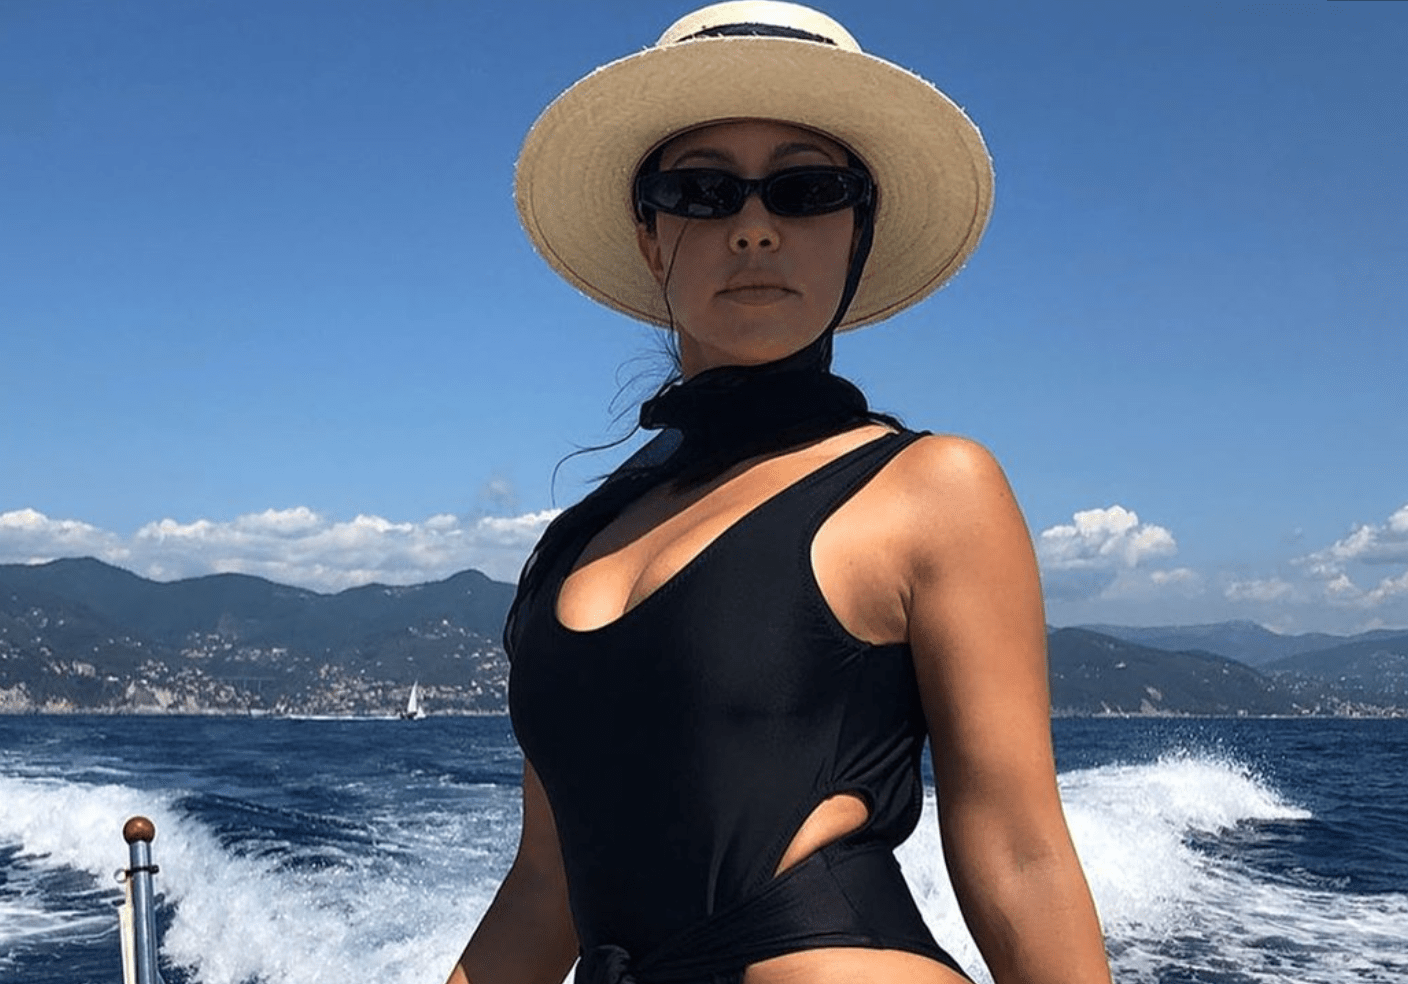 Kourtney Kardashian Shares Photo In Swimsuit Without Editing Out Stretch Marks